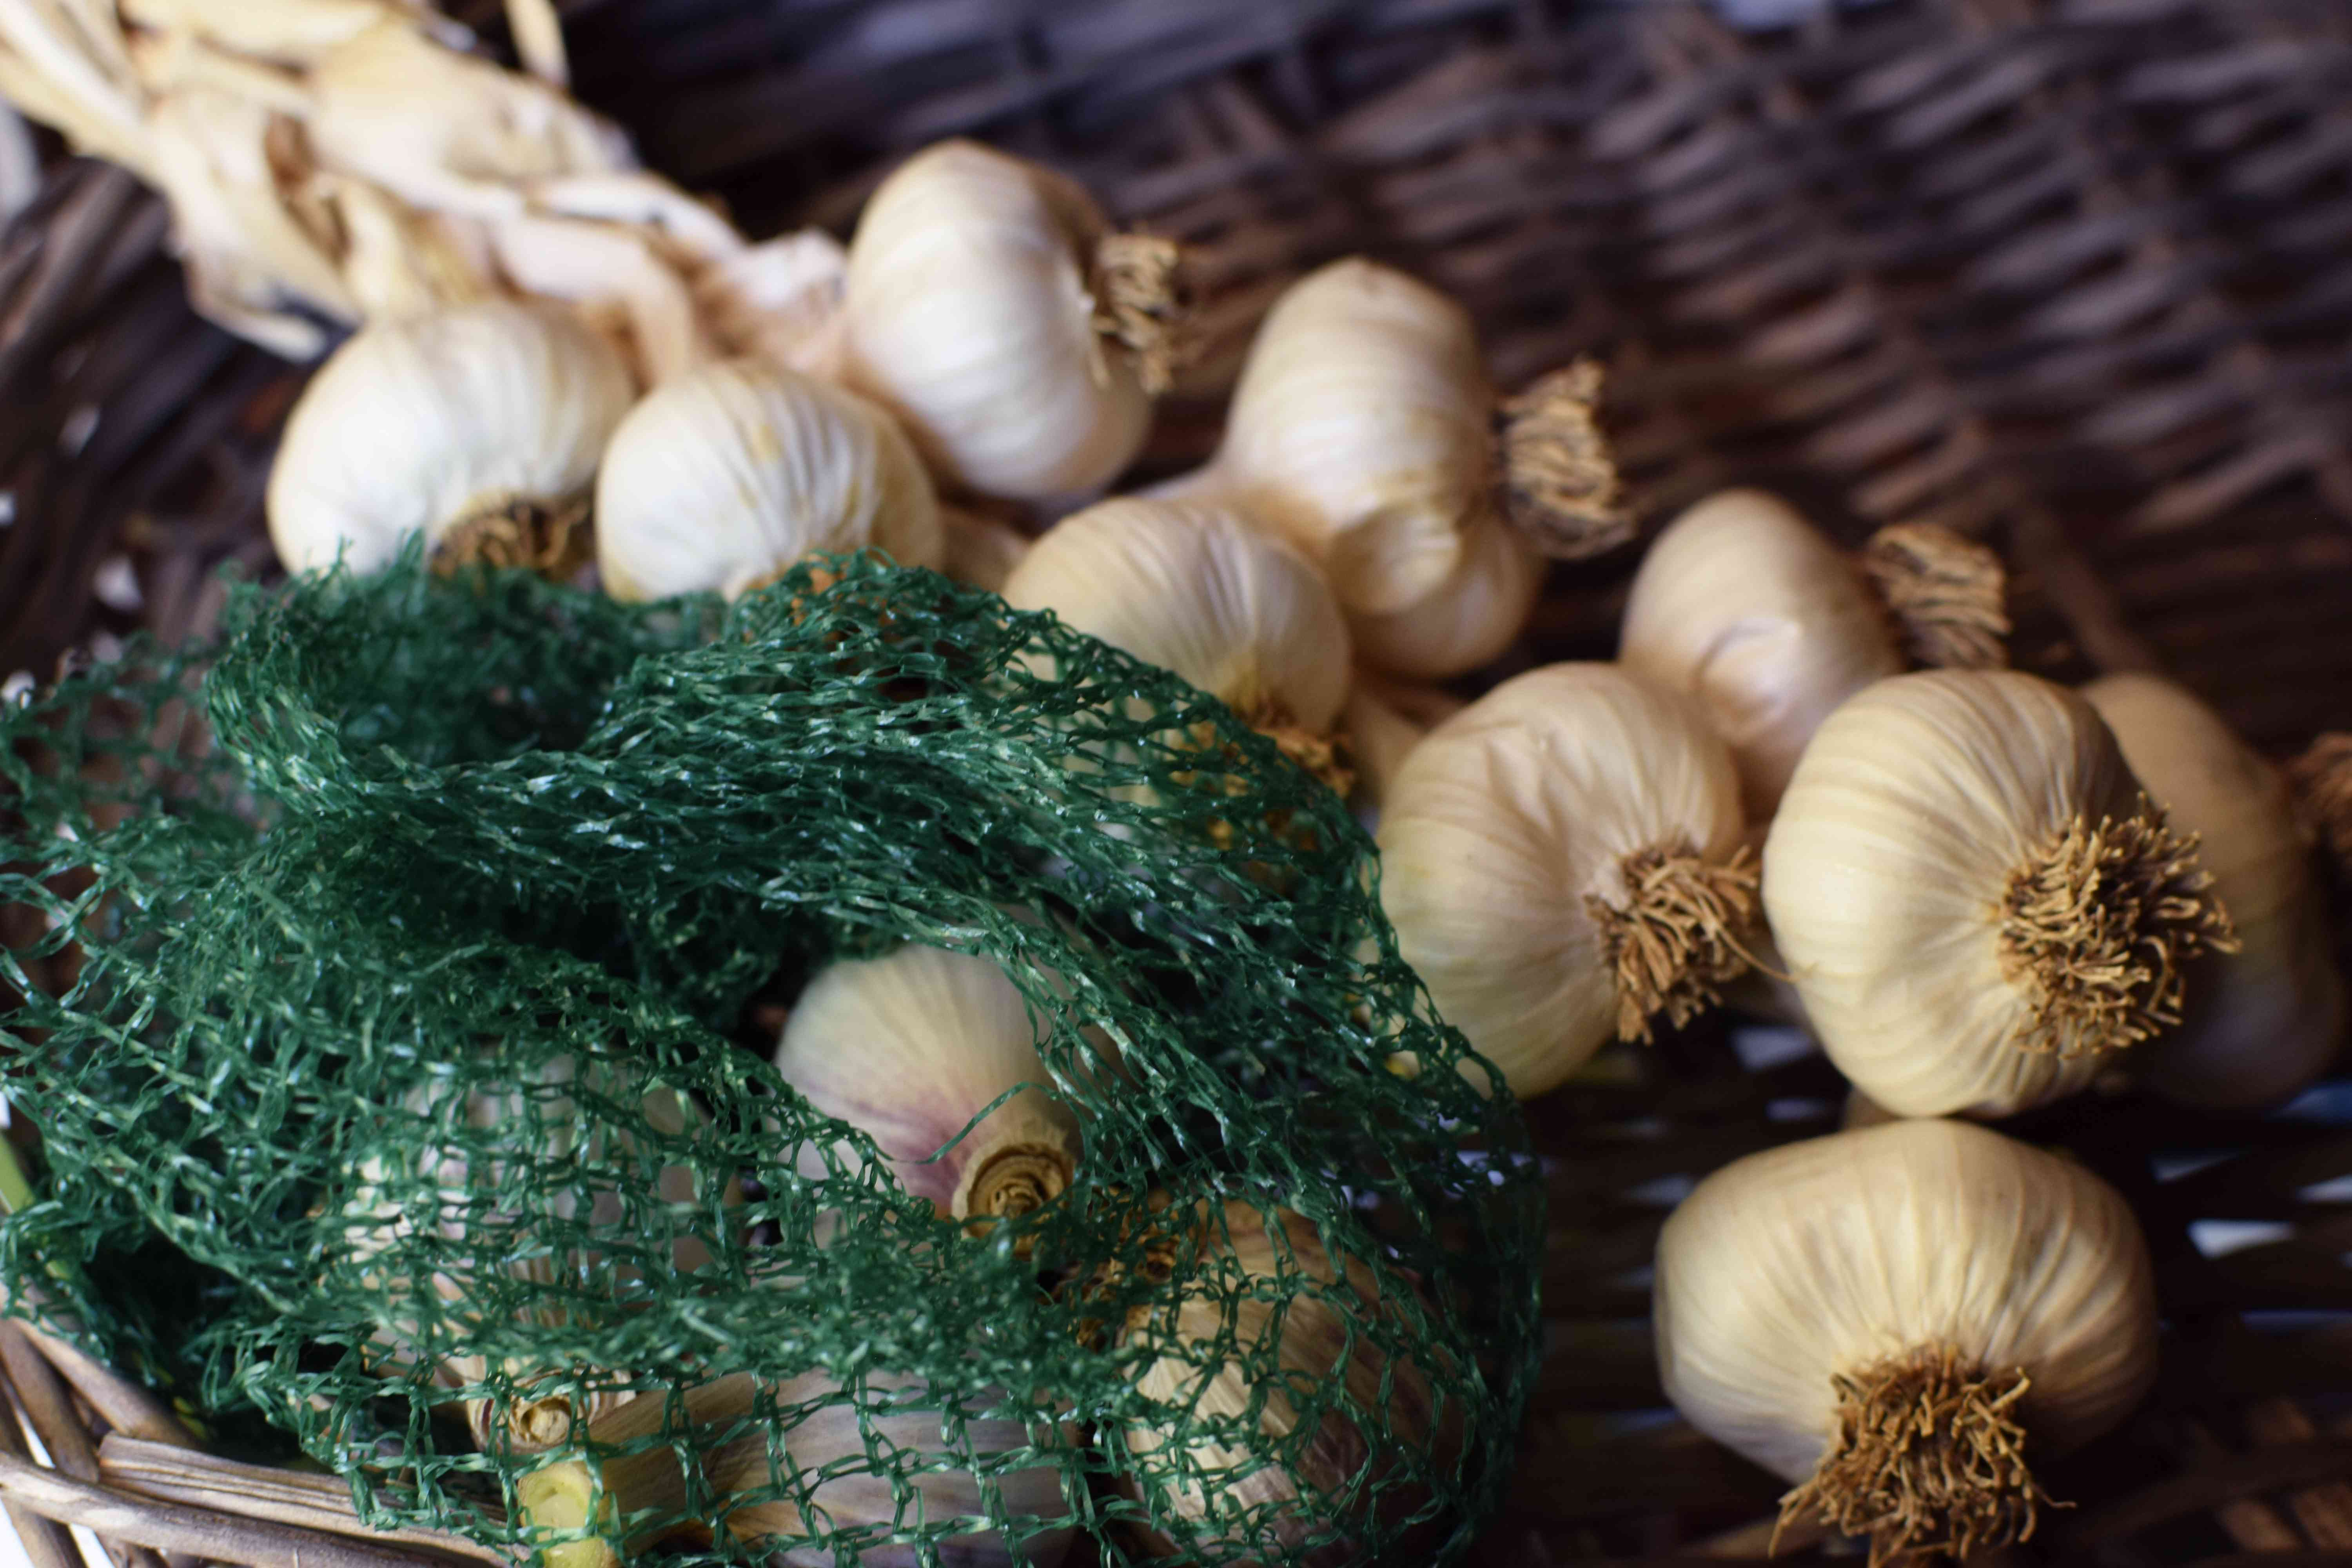 Harvested garlic stored in green mesh bag on wicker tray